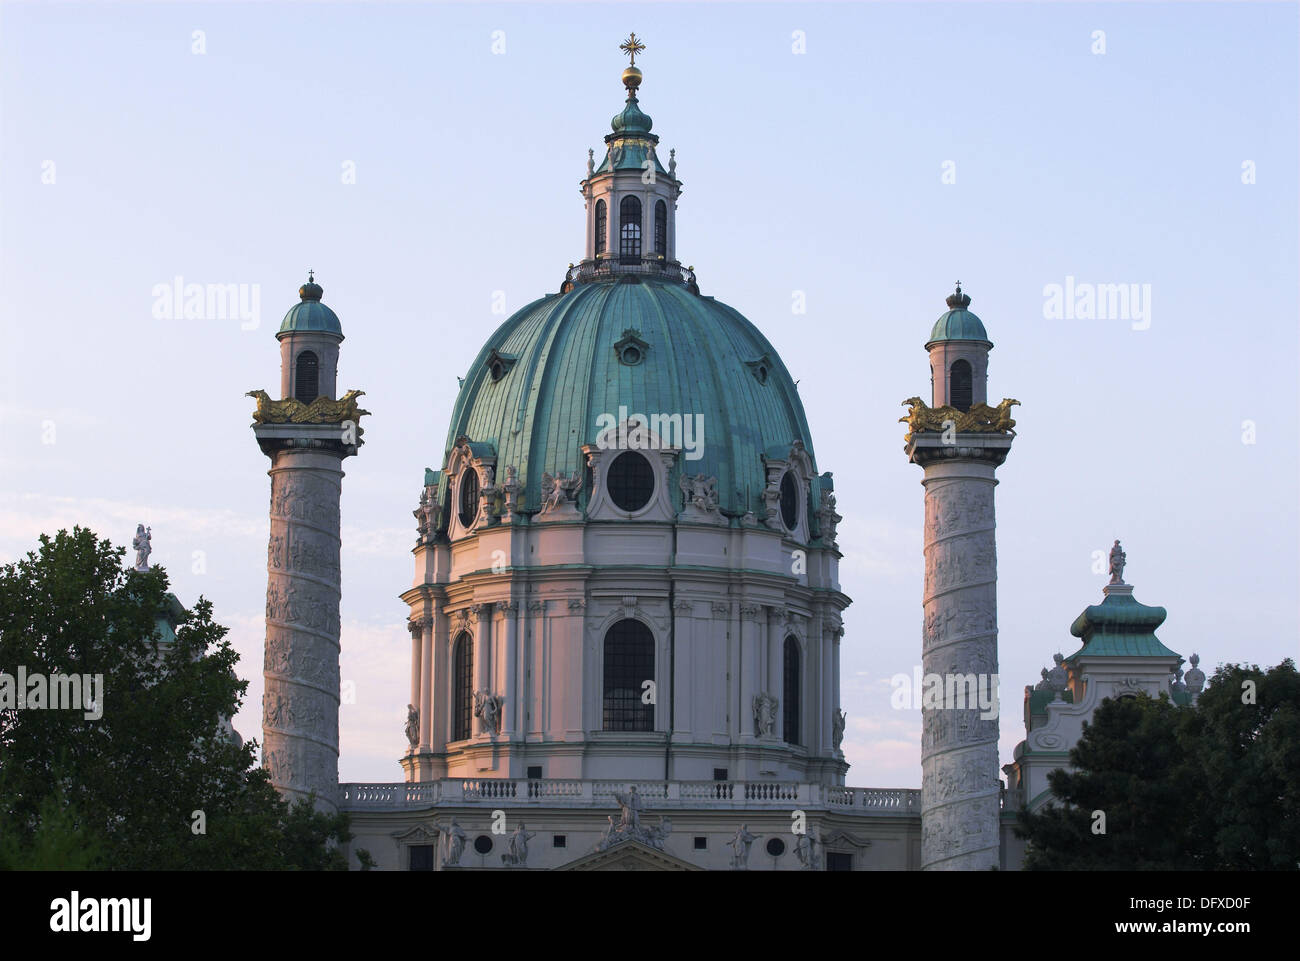 Karlskirche charles church dome cupola columns with for Churches of baroque period